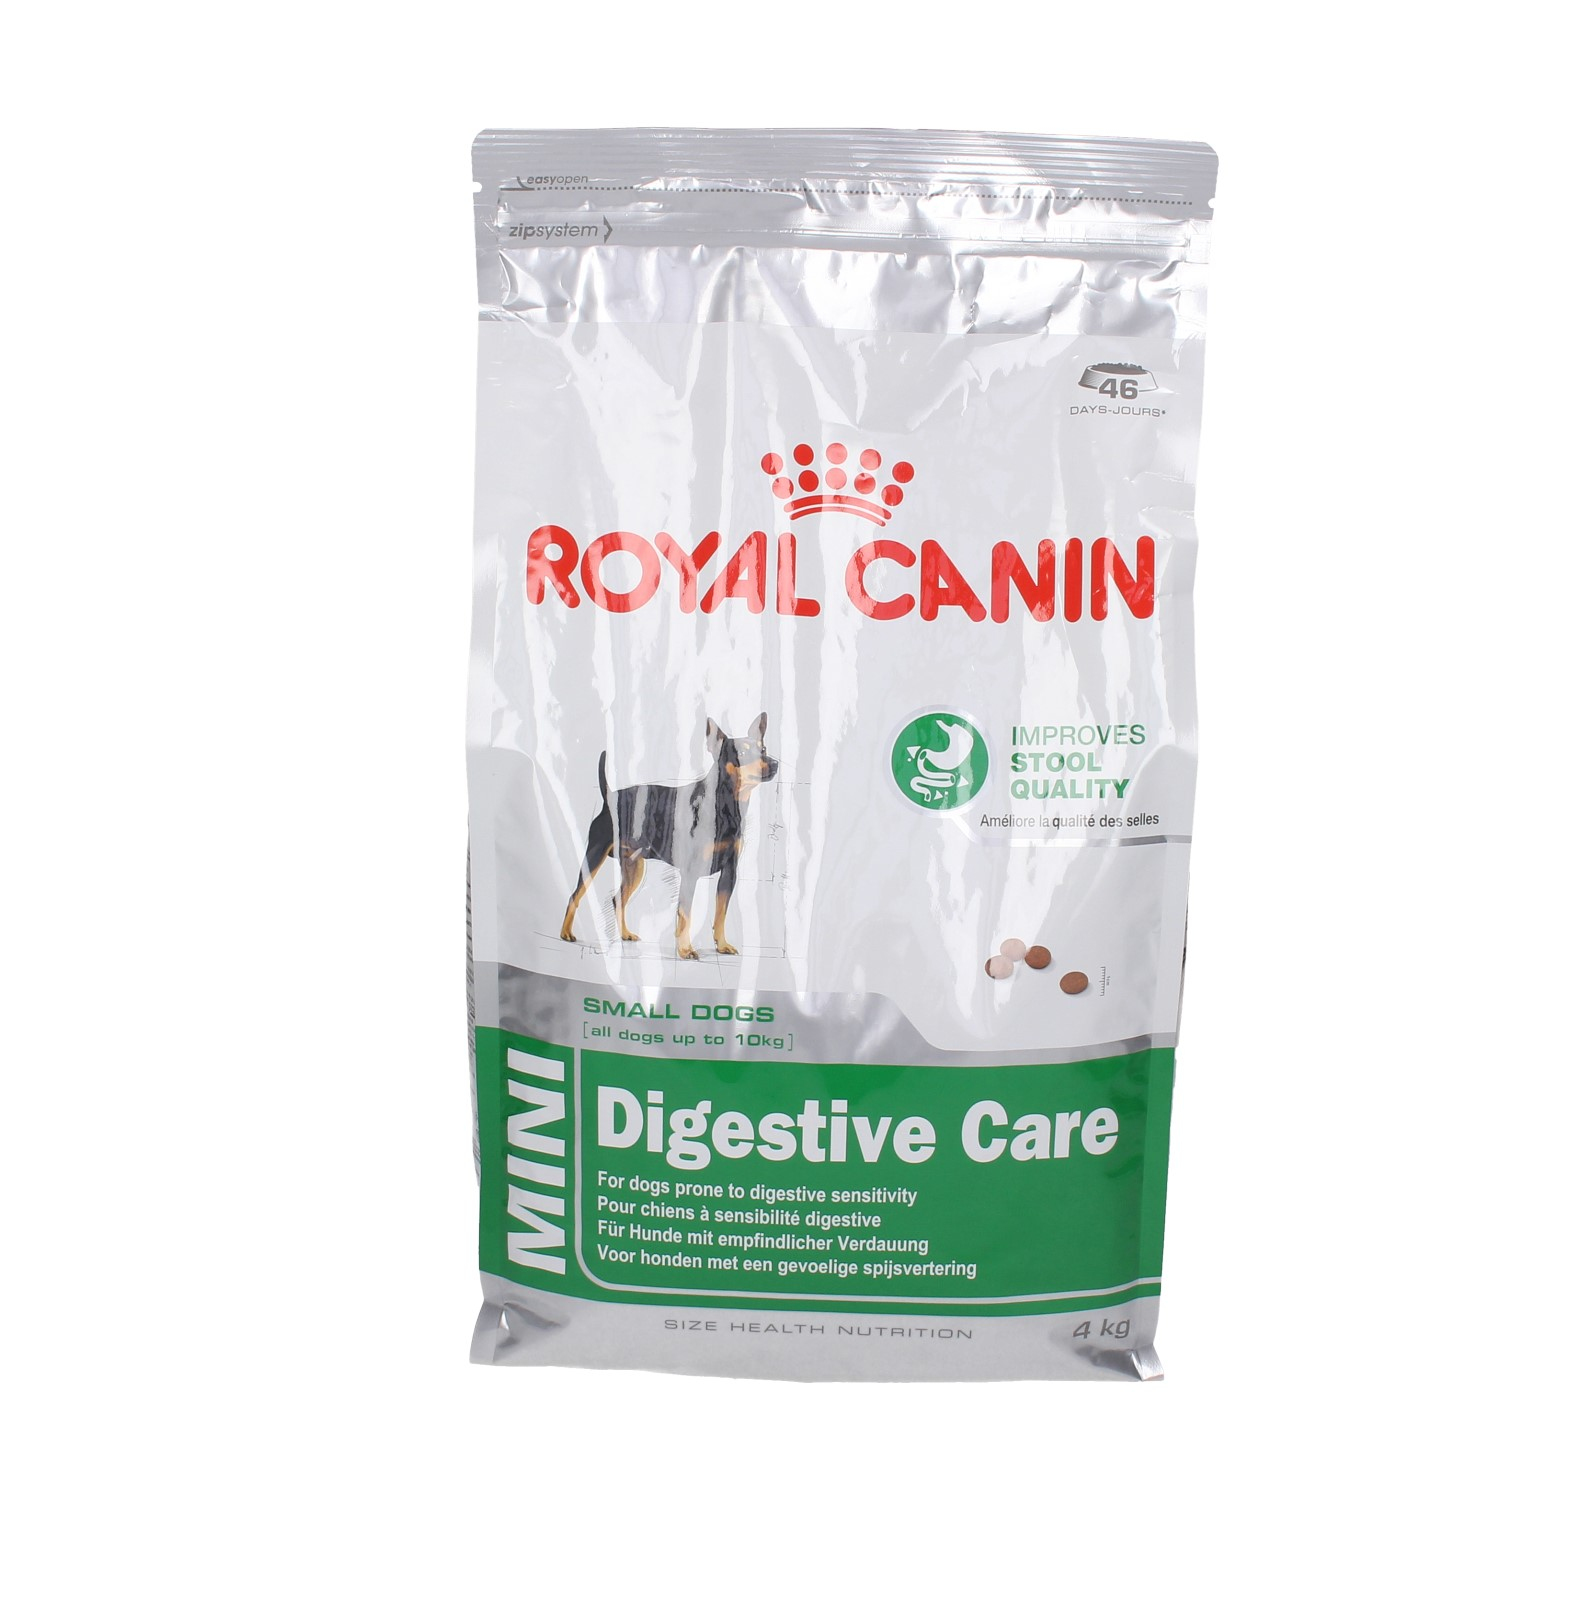 royal canin dog mini digestive care 4 kg karmy suche karmy pies sklep zoologiczny. Black Bedroom Furniture Sets. Home Design Ideas